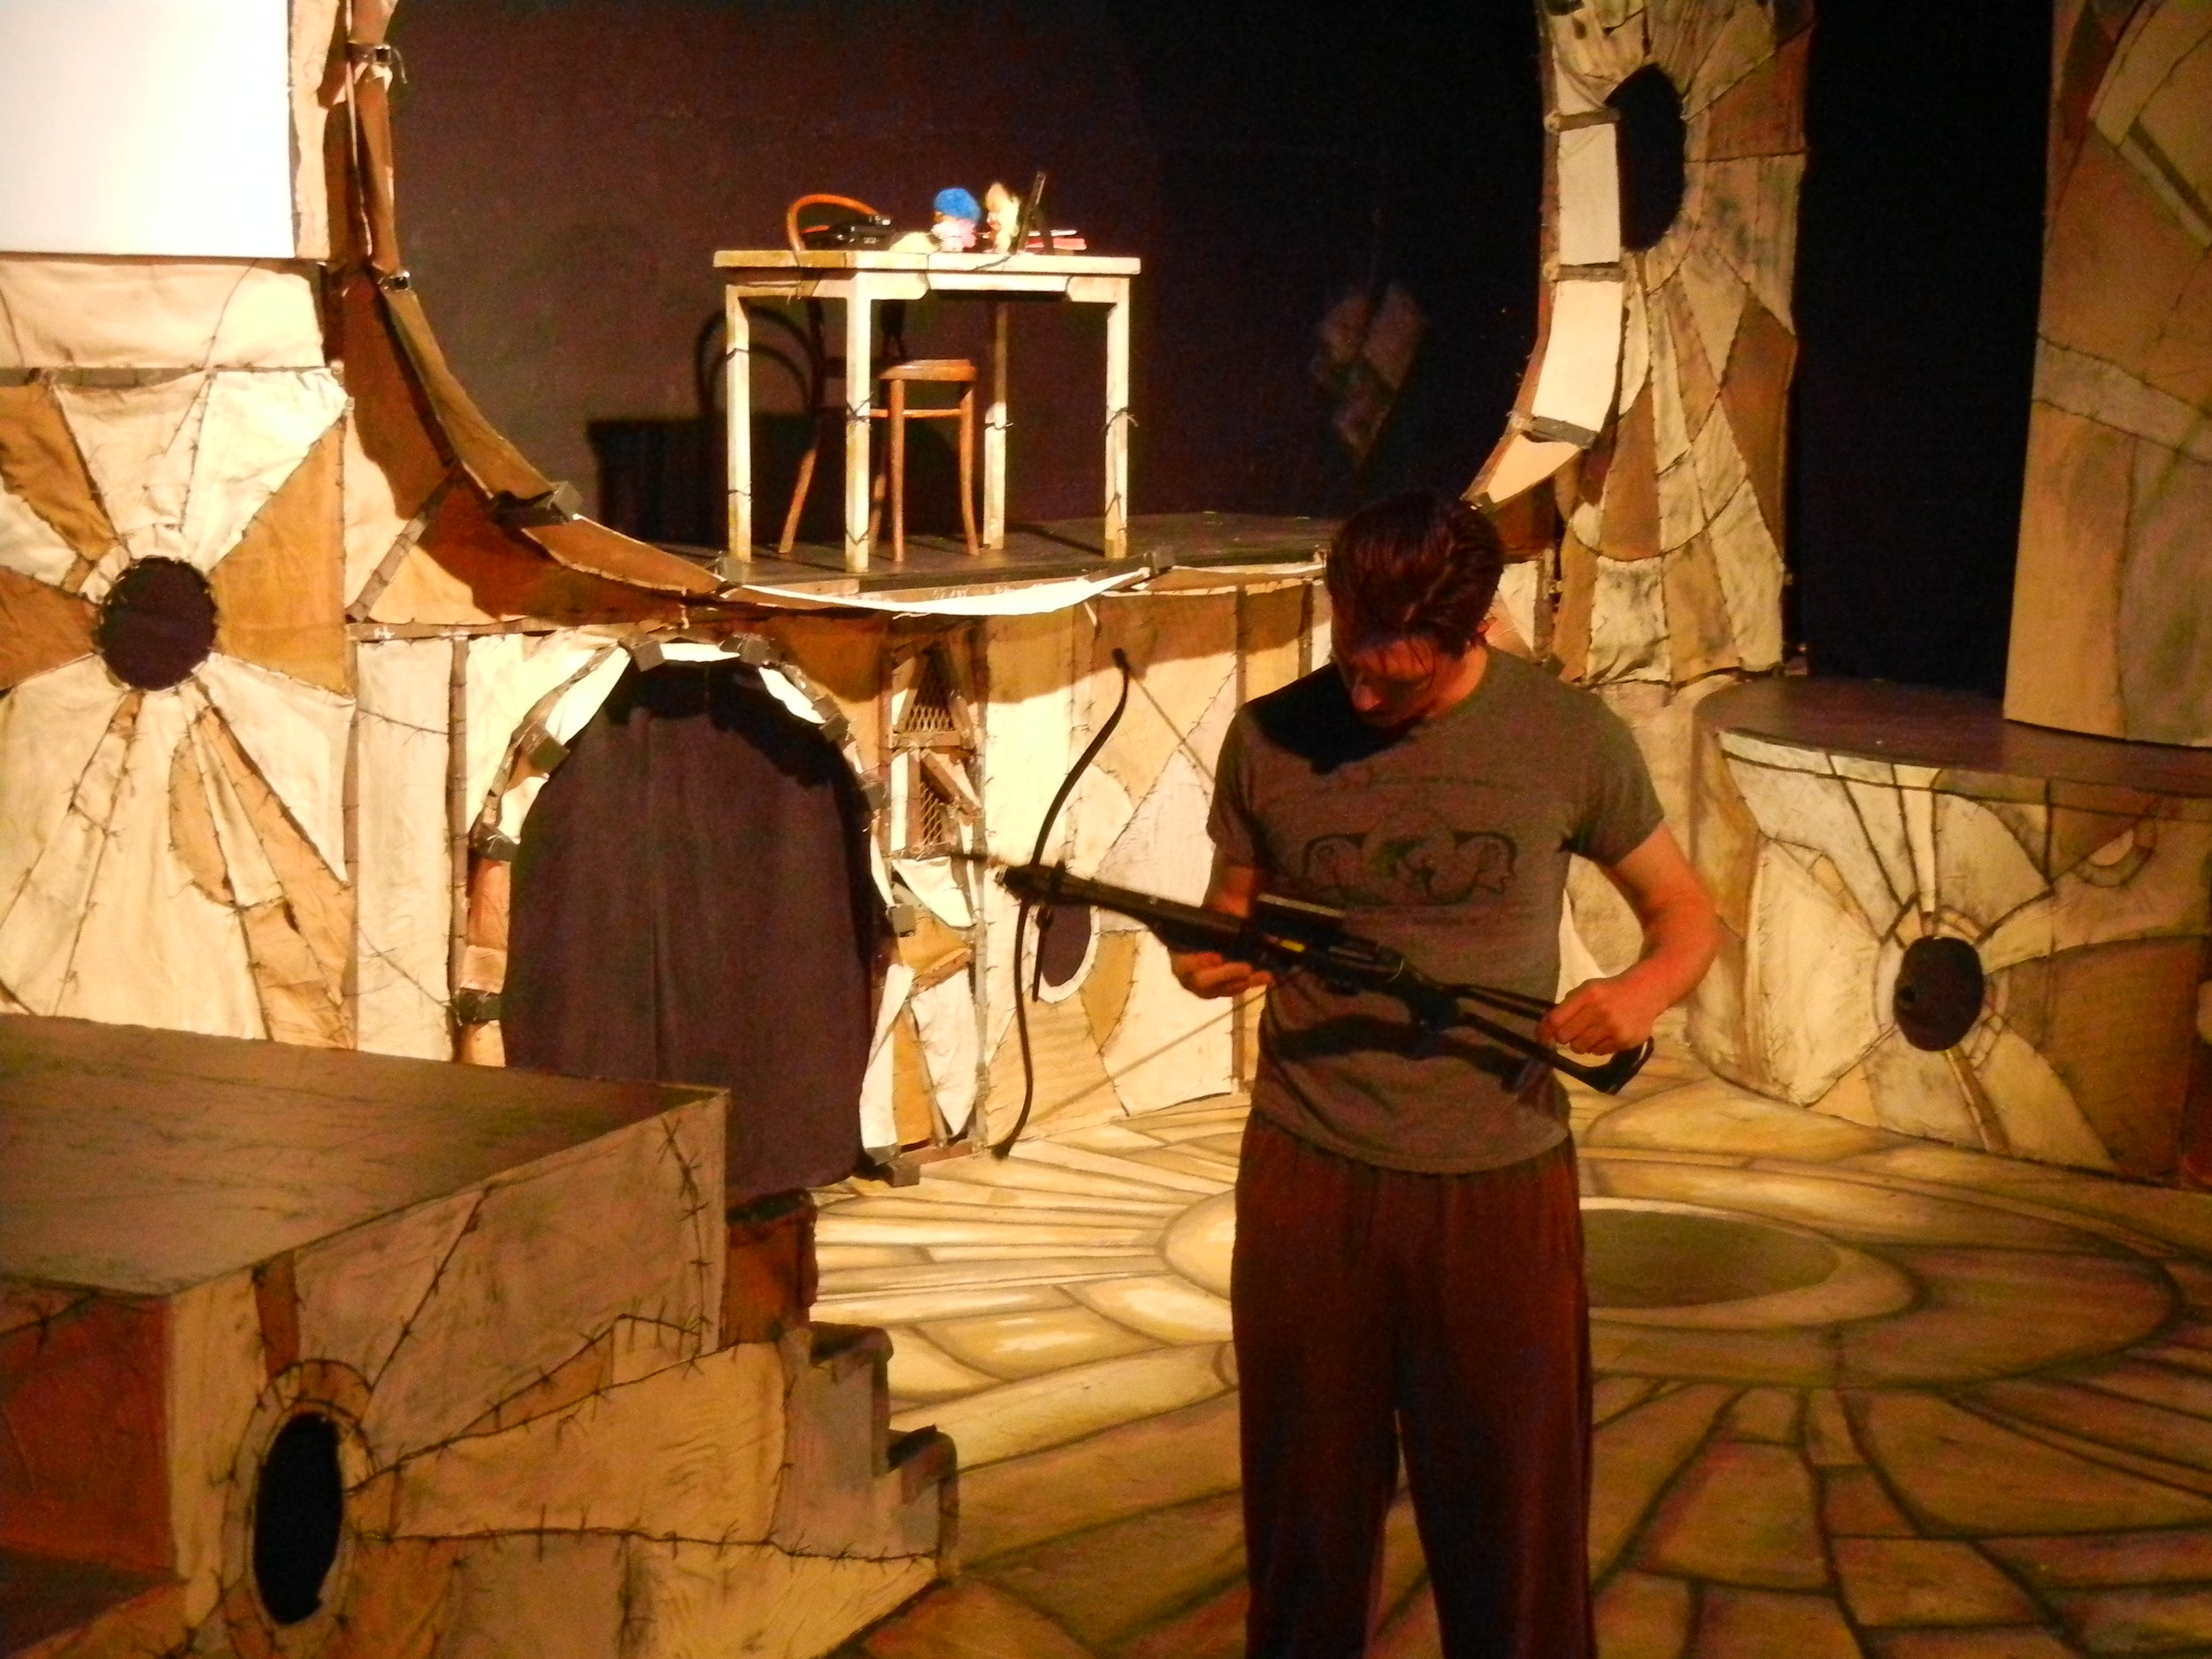 Jonathan Kells Phillips as Marquis de Carabas checks his crossbow prop.